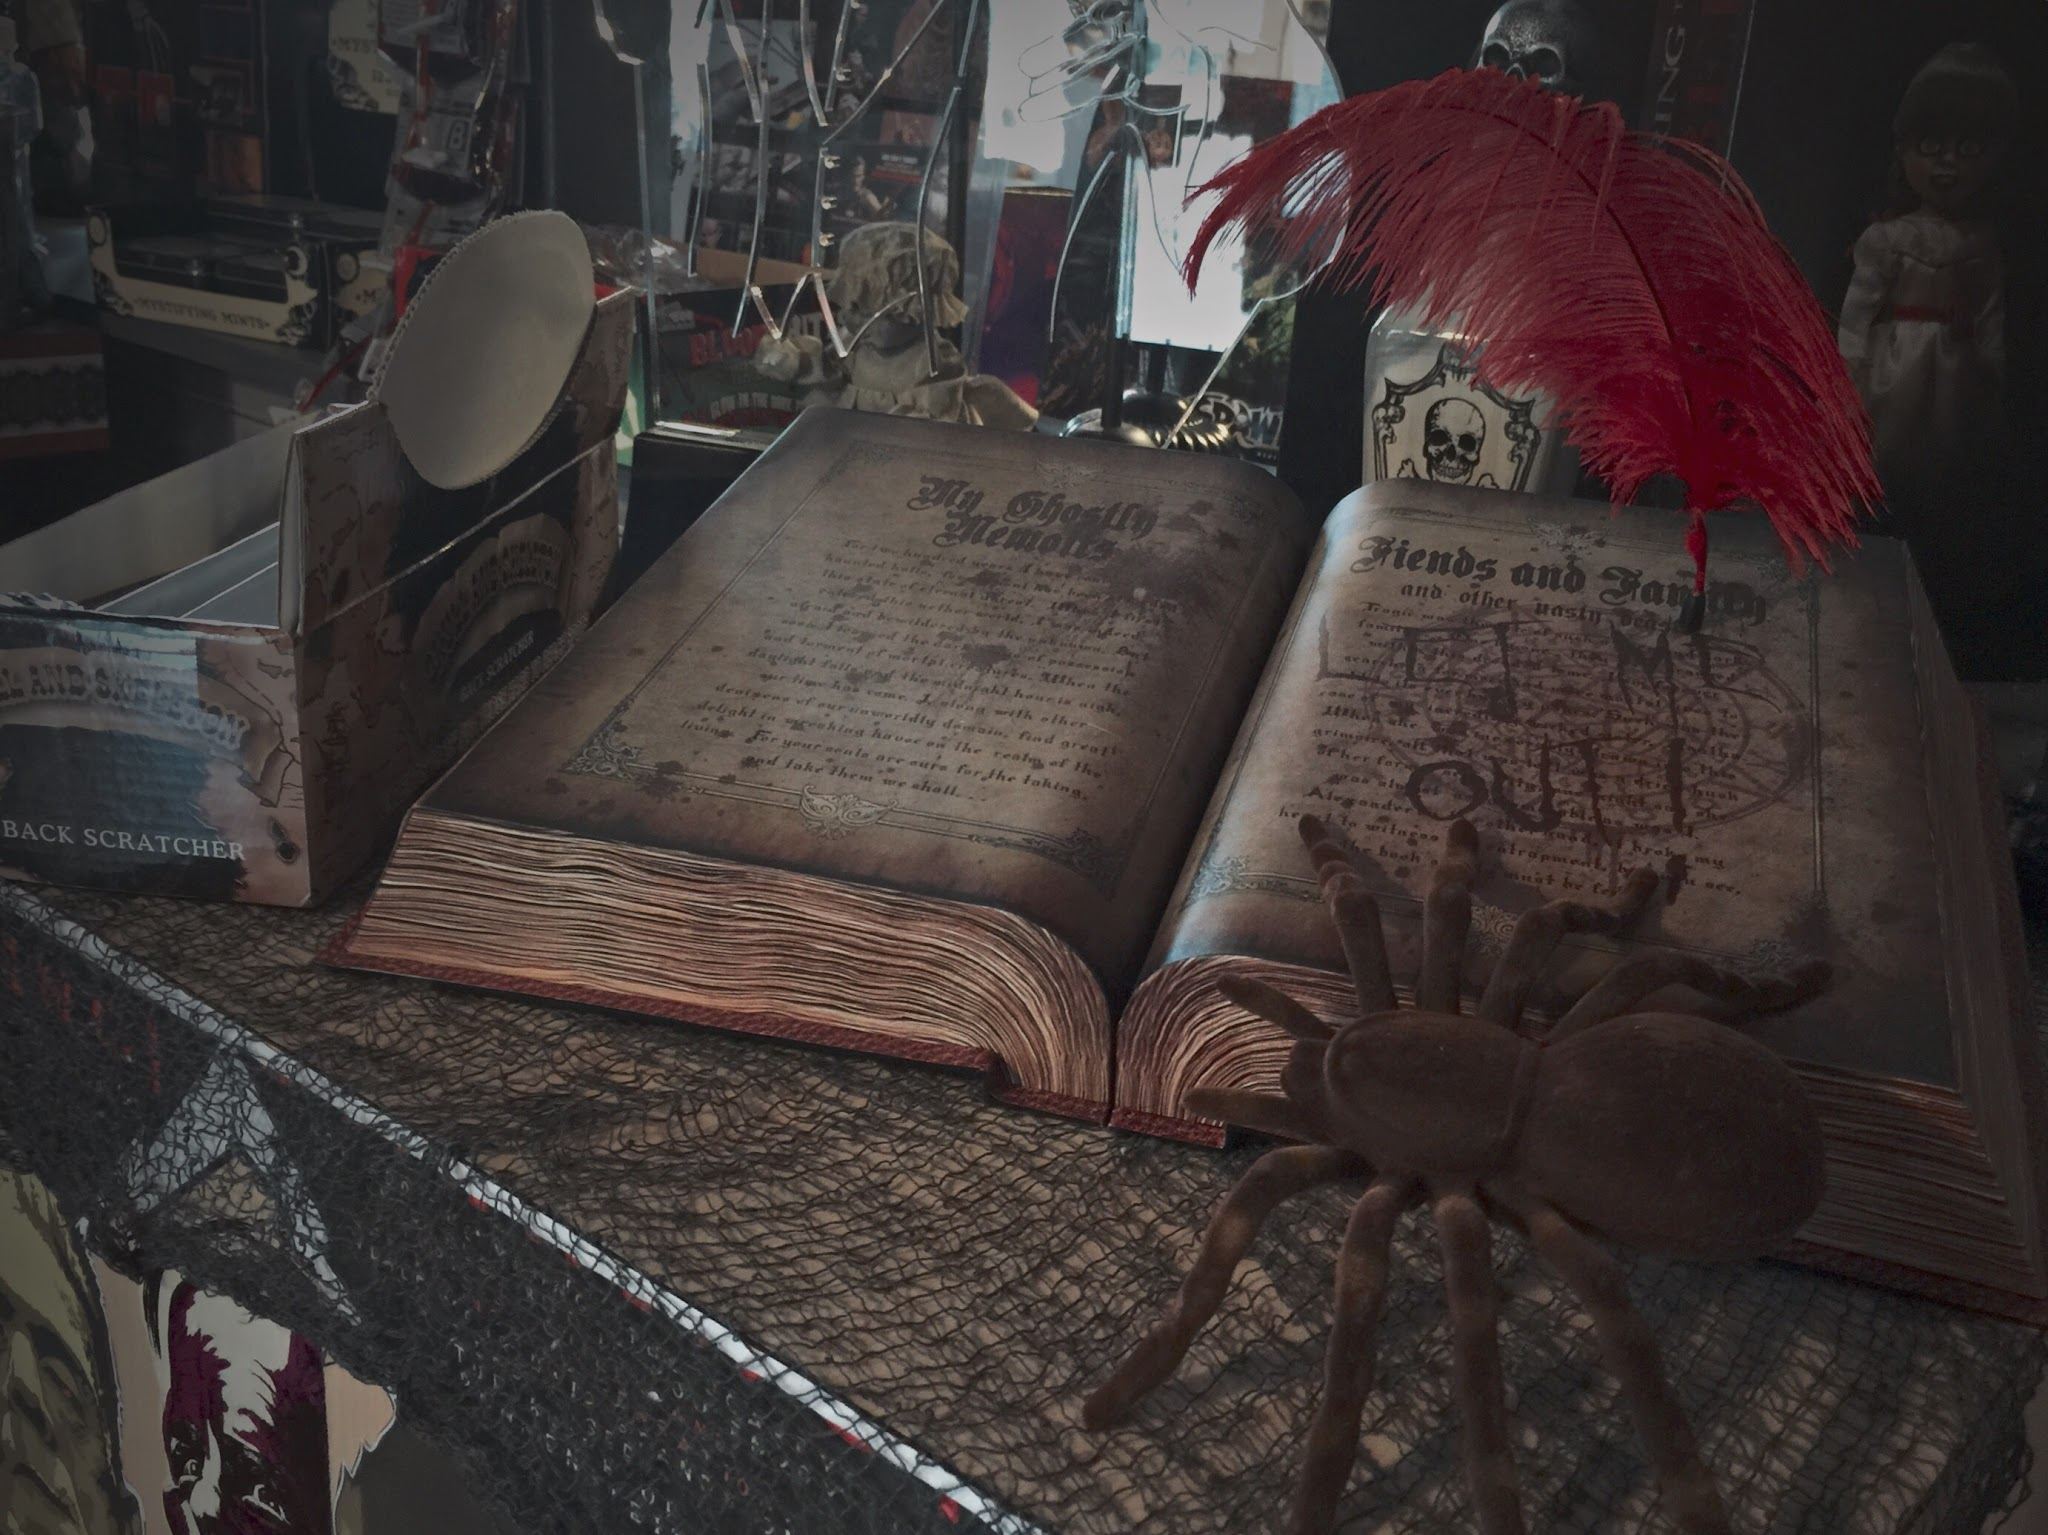 The haunted guestbook, a popular item this past Halloween